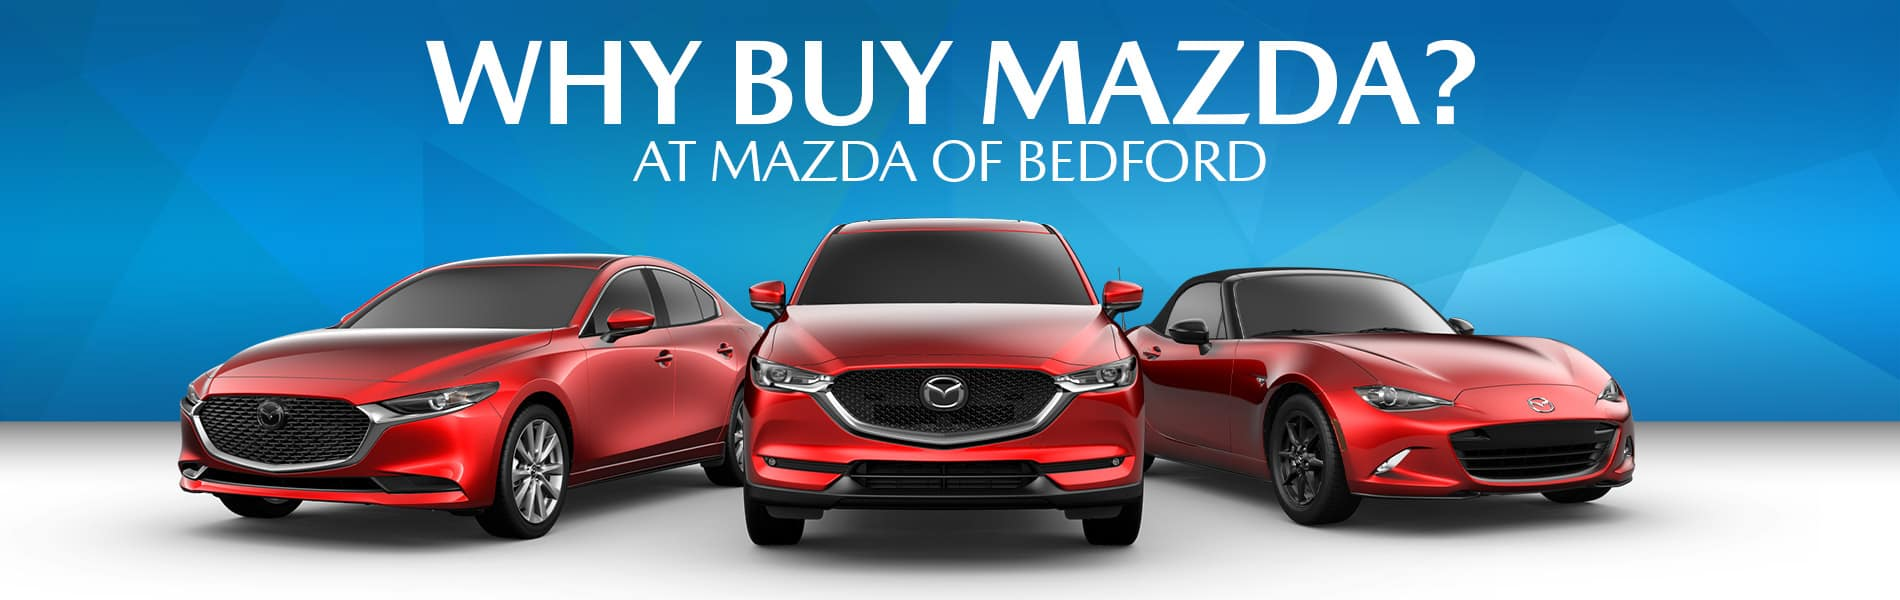 These are just a few reasons why you should consider Mazda for your next purchase.